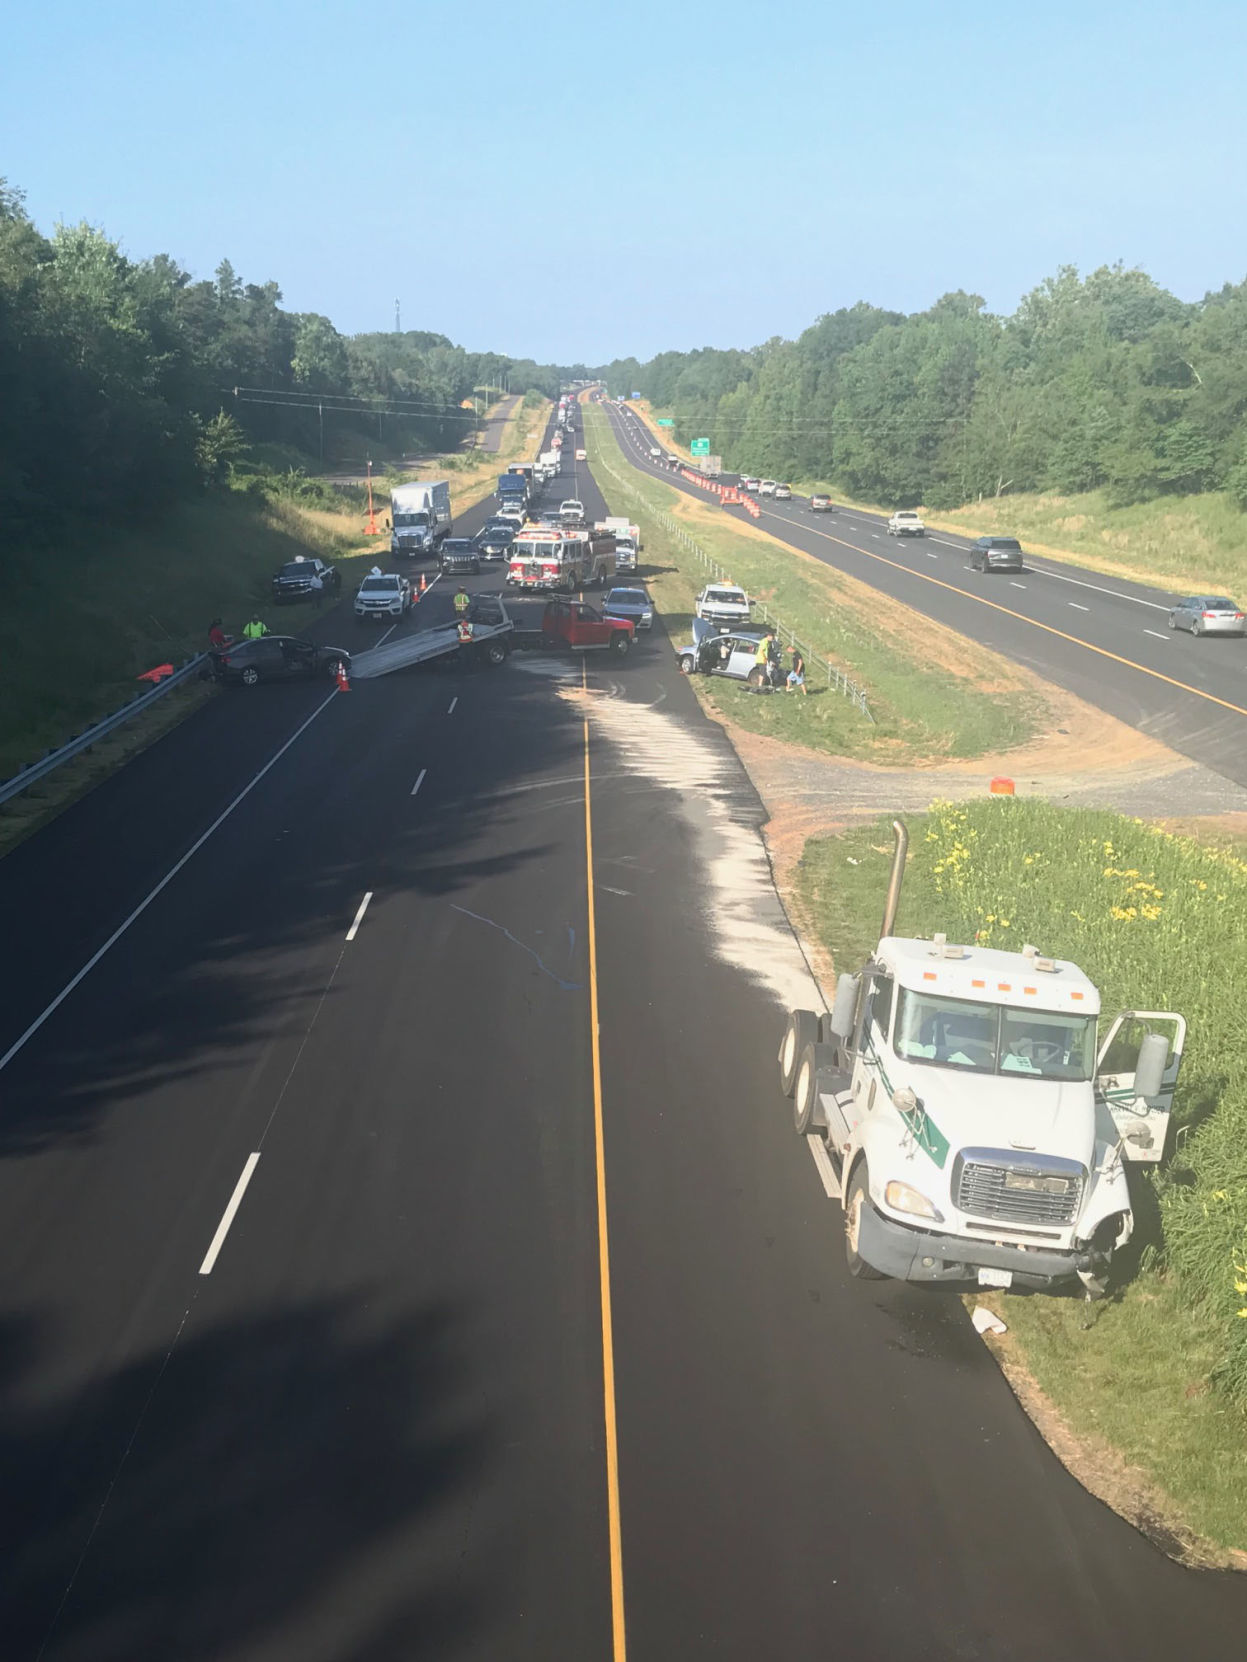 1 person dead in Friday morning crash that shut down I-40 in Davie County | Winston Salem Journal